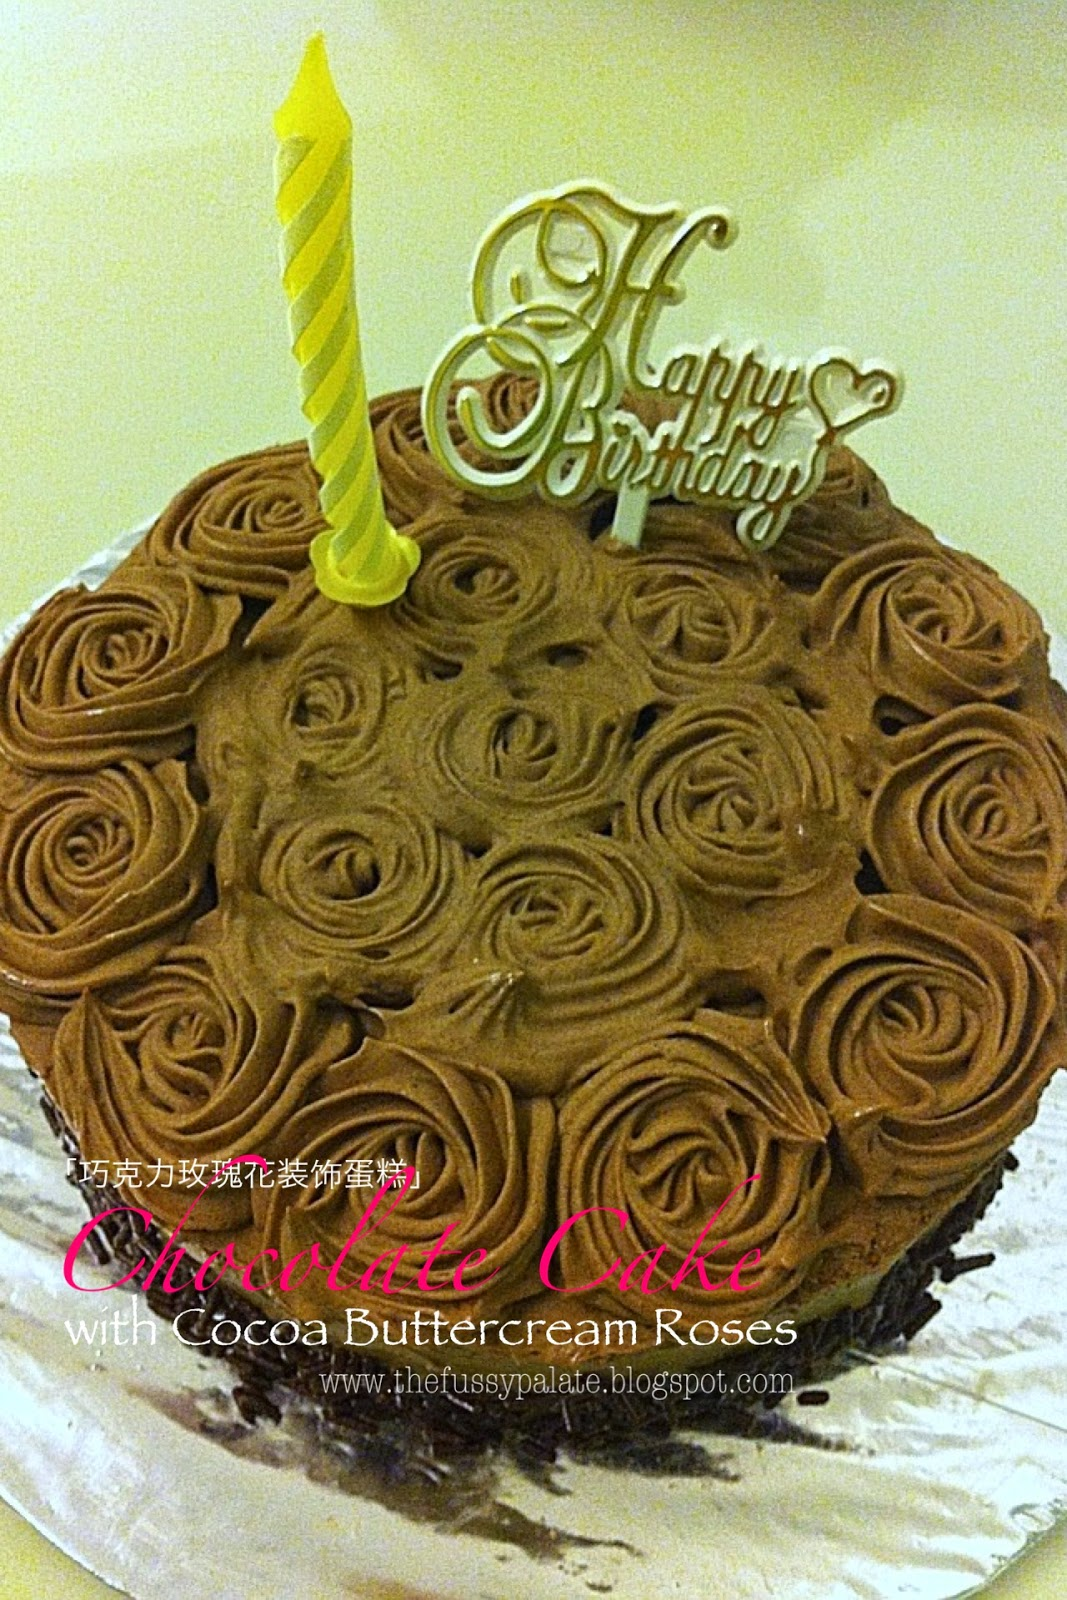 how to make chocolate cake with cocoa powder